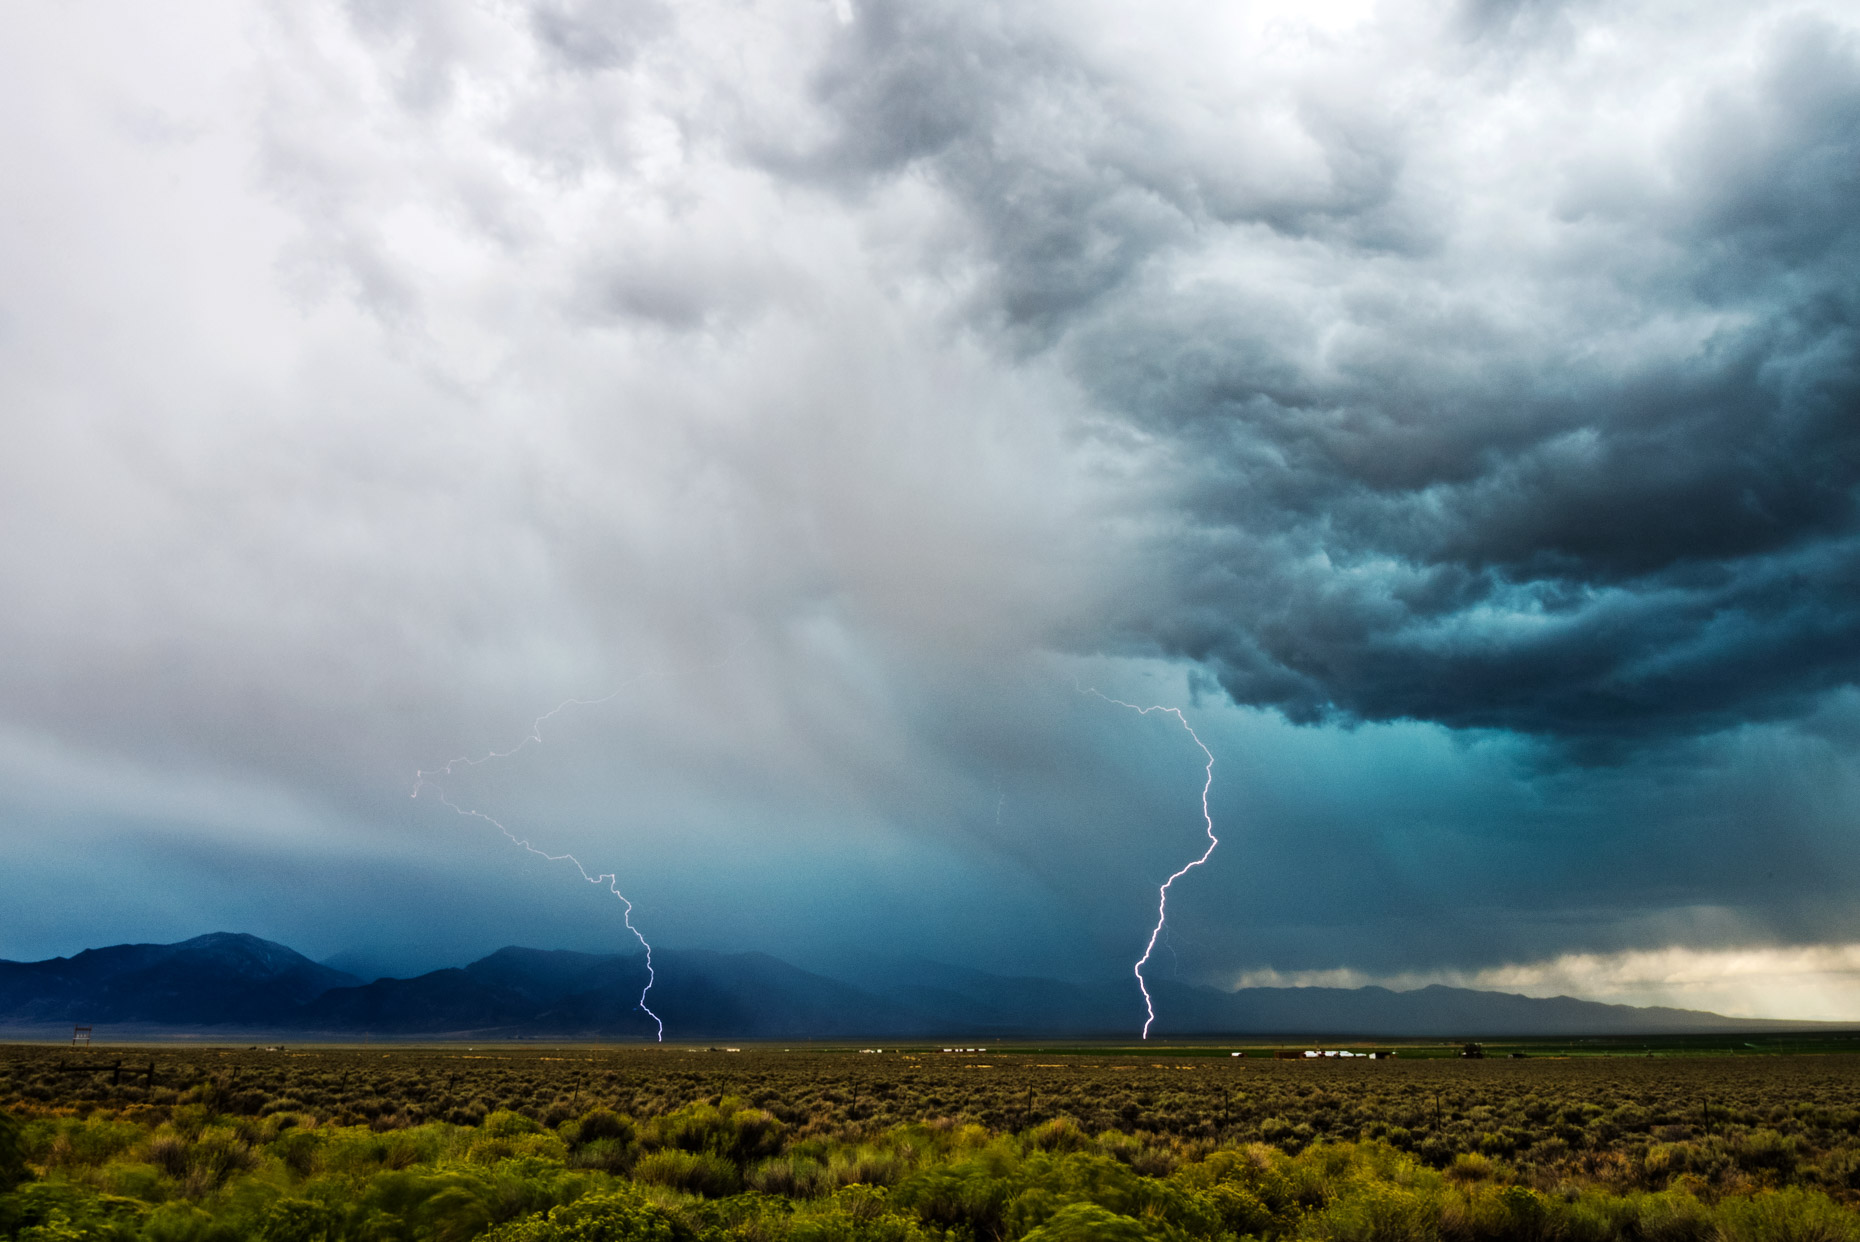 Lightning Strikes In The Desert - Ely, Nevada